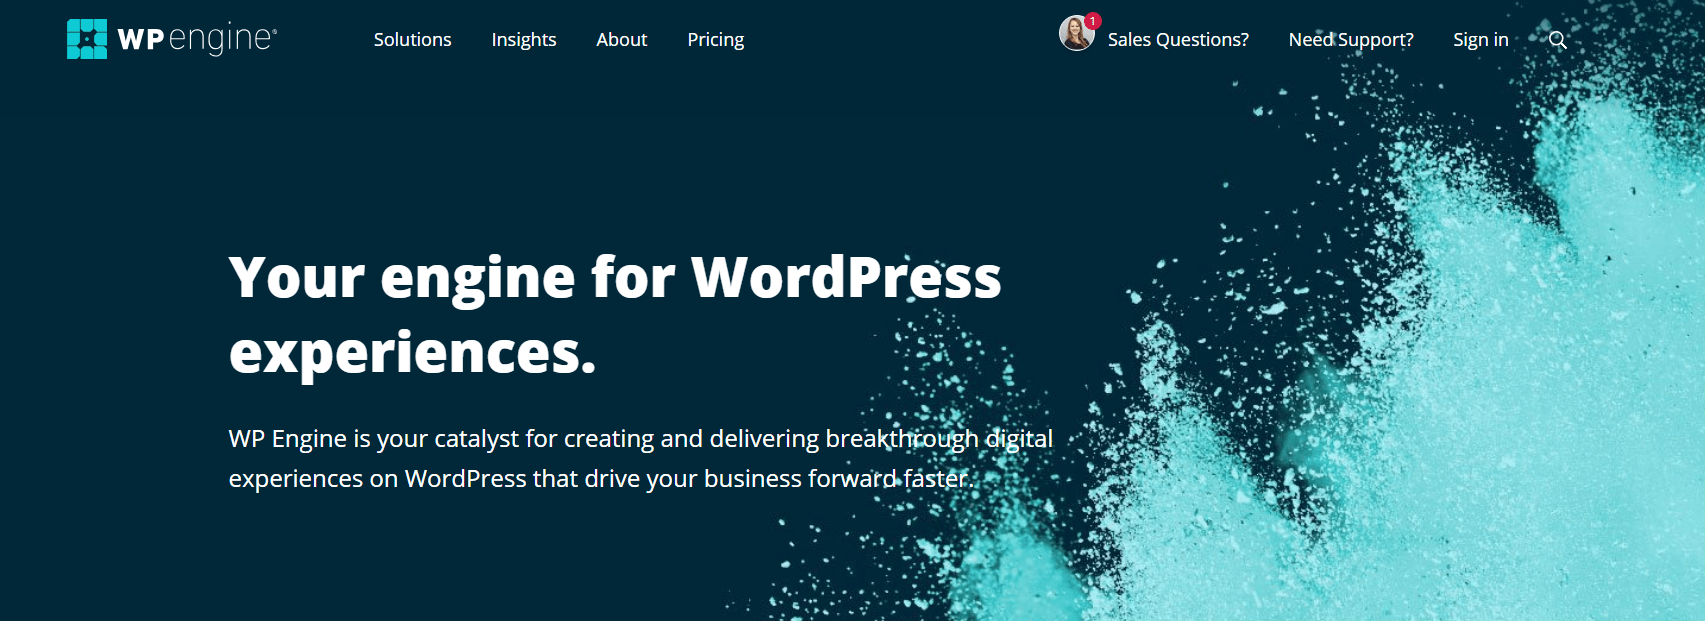 Buy WordPress Hosting WP Engine  Amazon Prime Day